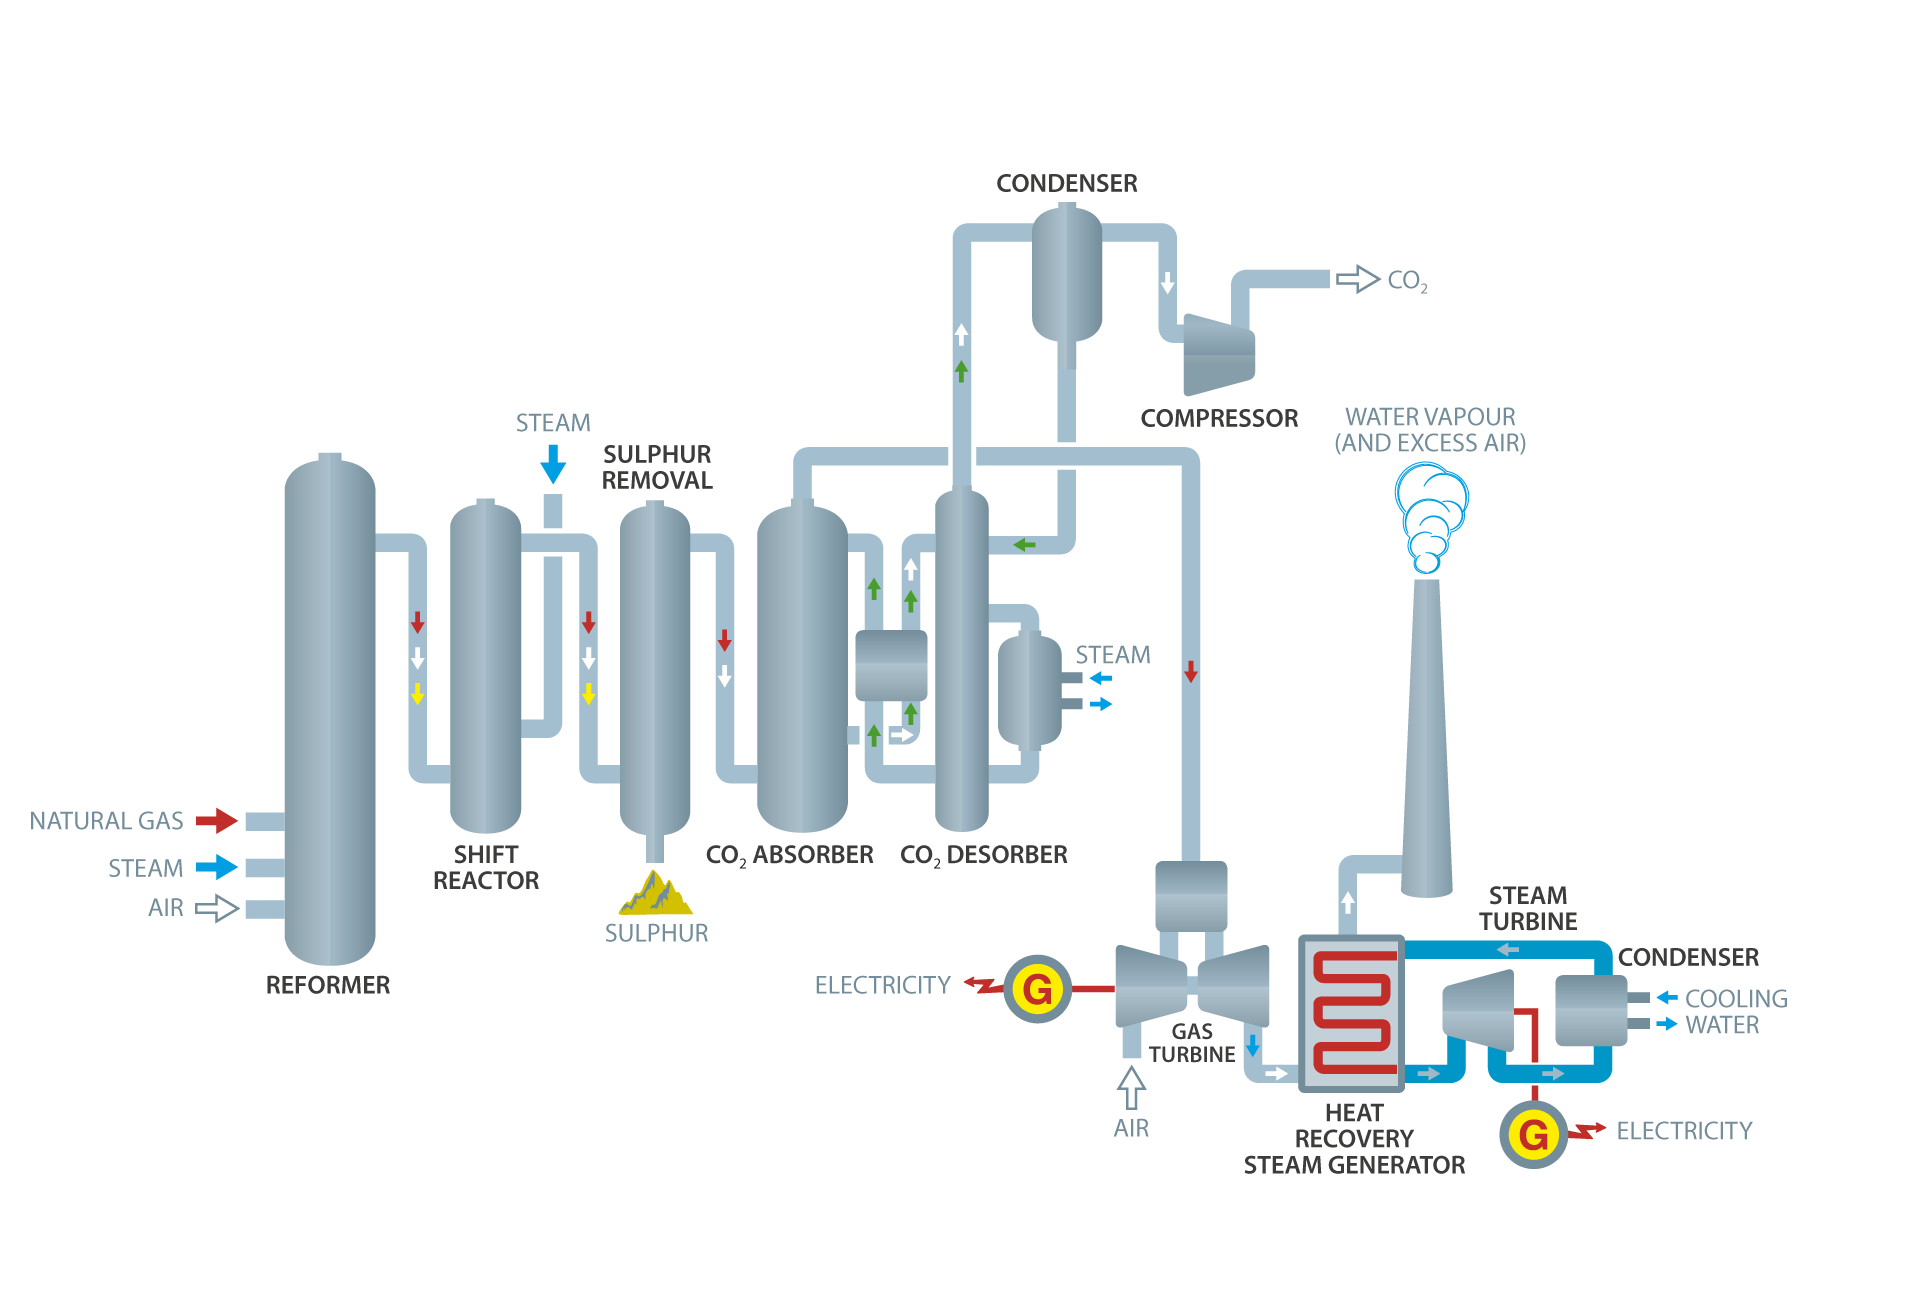 Ccsp Final Report Print Flow Diagram Besides Gas Forced Air Furnace On Generator The Chosen Pre Combustion Technology Consisted Of Natural Reforming A Water Shift Wgs Process And Co Capture Unit Placed